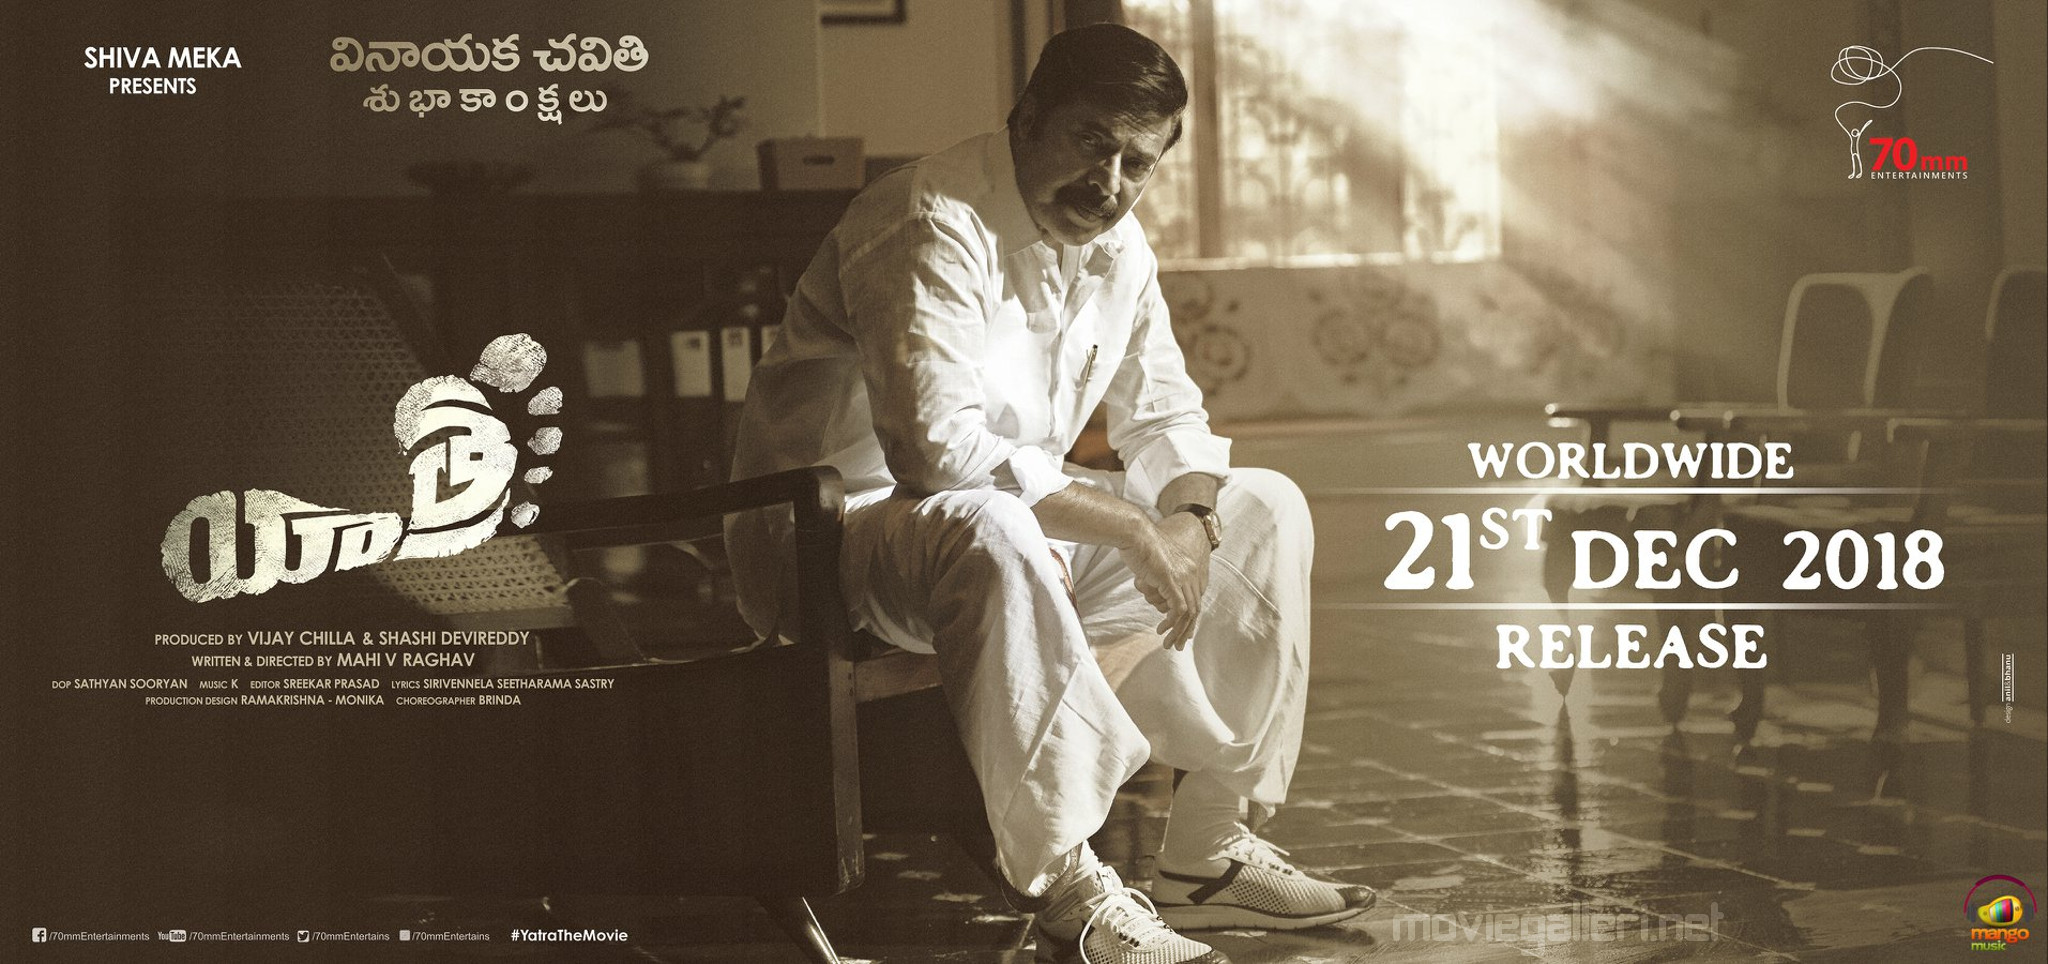 Mammootty Yatra Movie Releasing On Dec 21st On The Occasion Of YS Jagan's Birthday